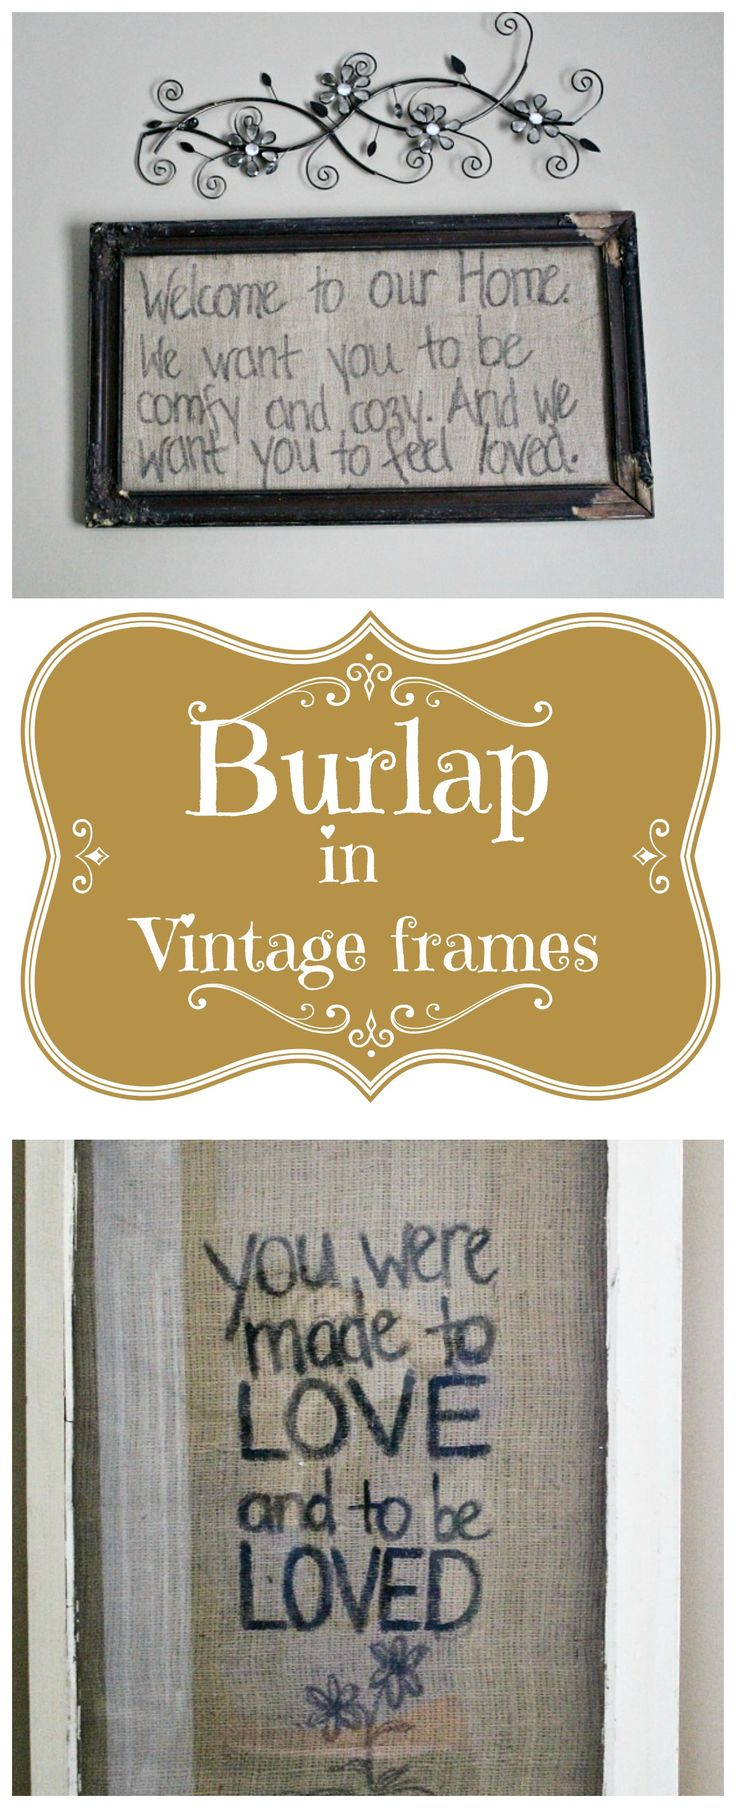 This could be done much nicer but I love the thought for a guest bedroom  Framed #Burlap art and fresh decorating guest bedroom ideas.